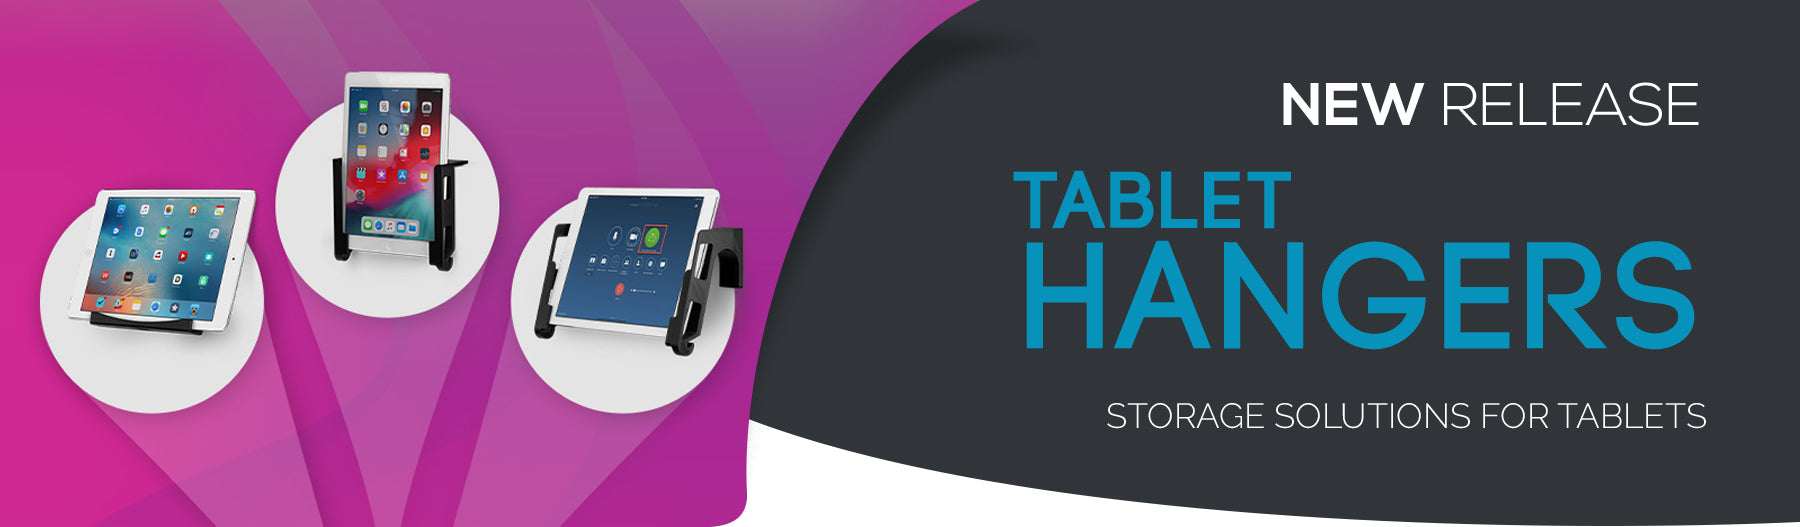 NEW - Storage Solutions for Tablets